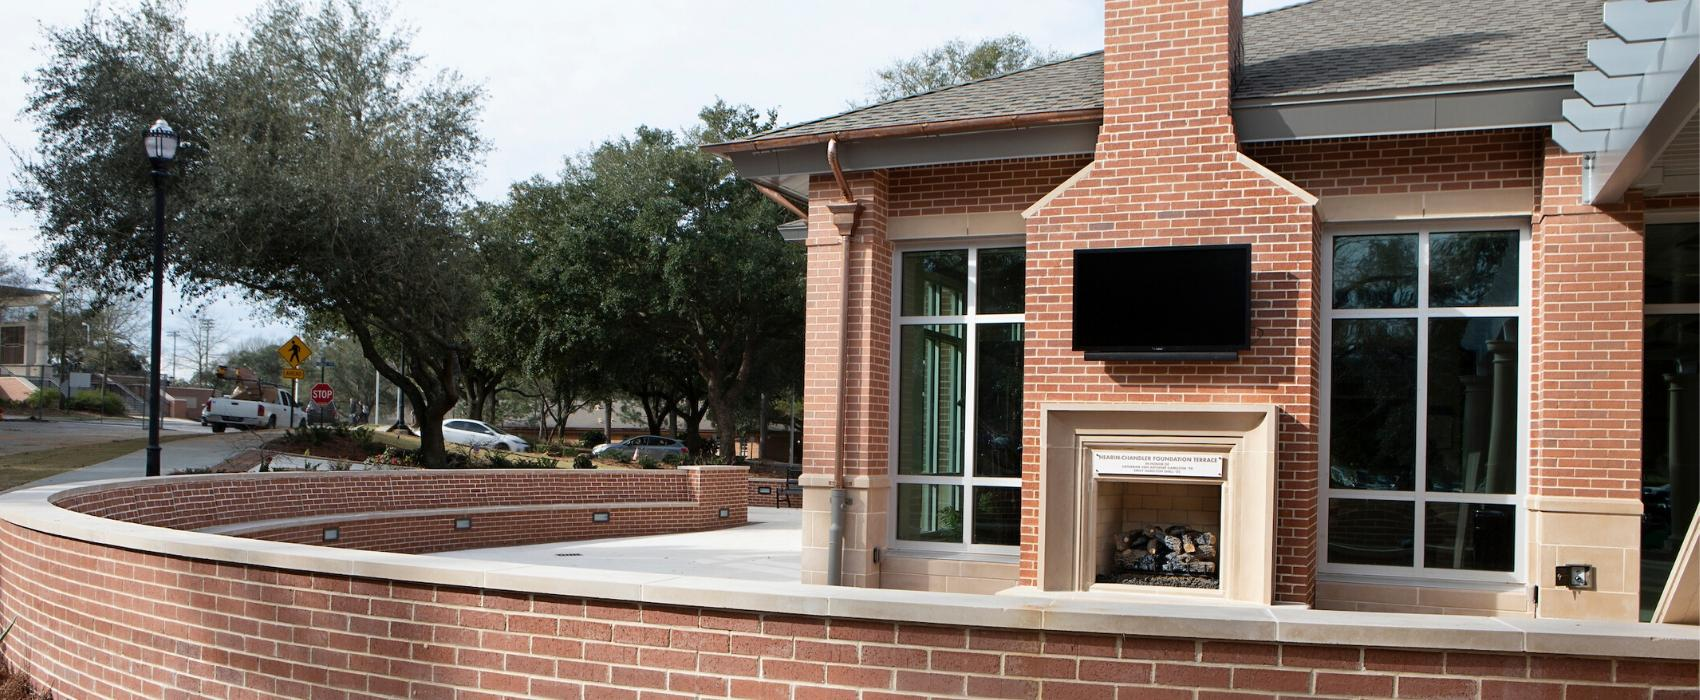 Outside patio with fireplace of MacQueen Center